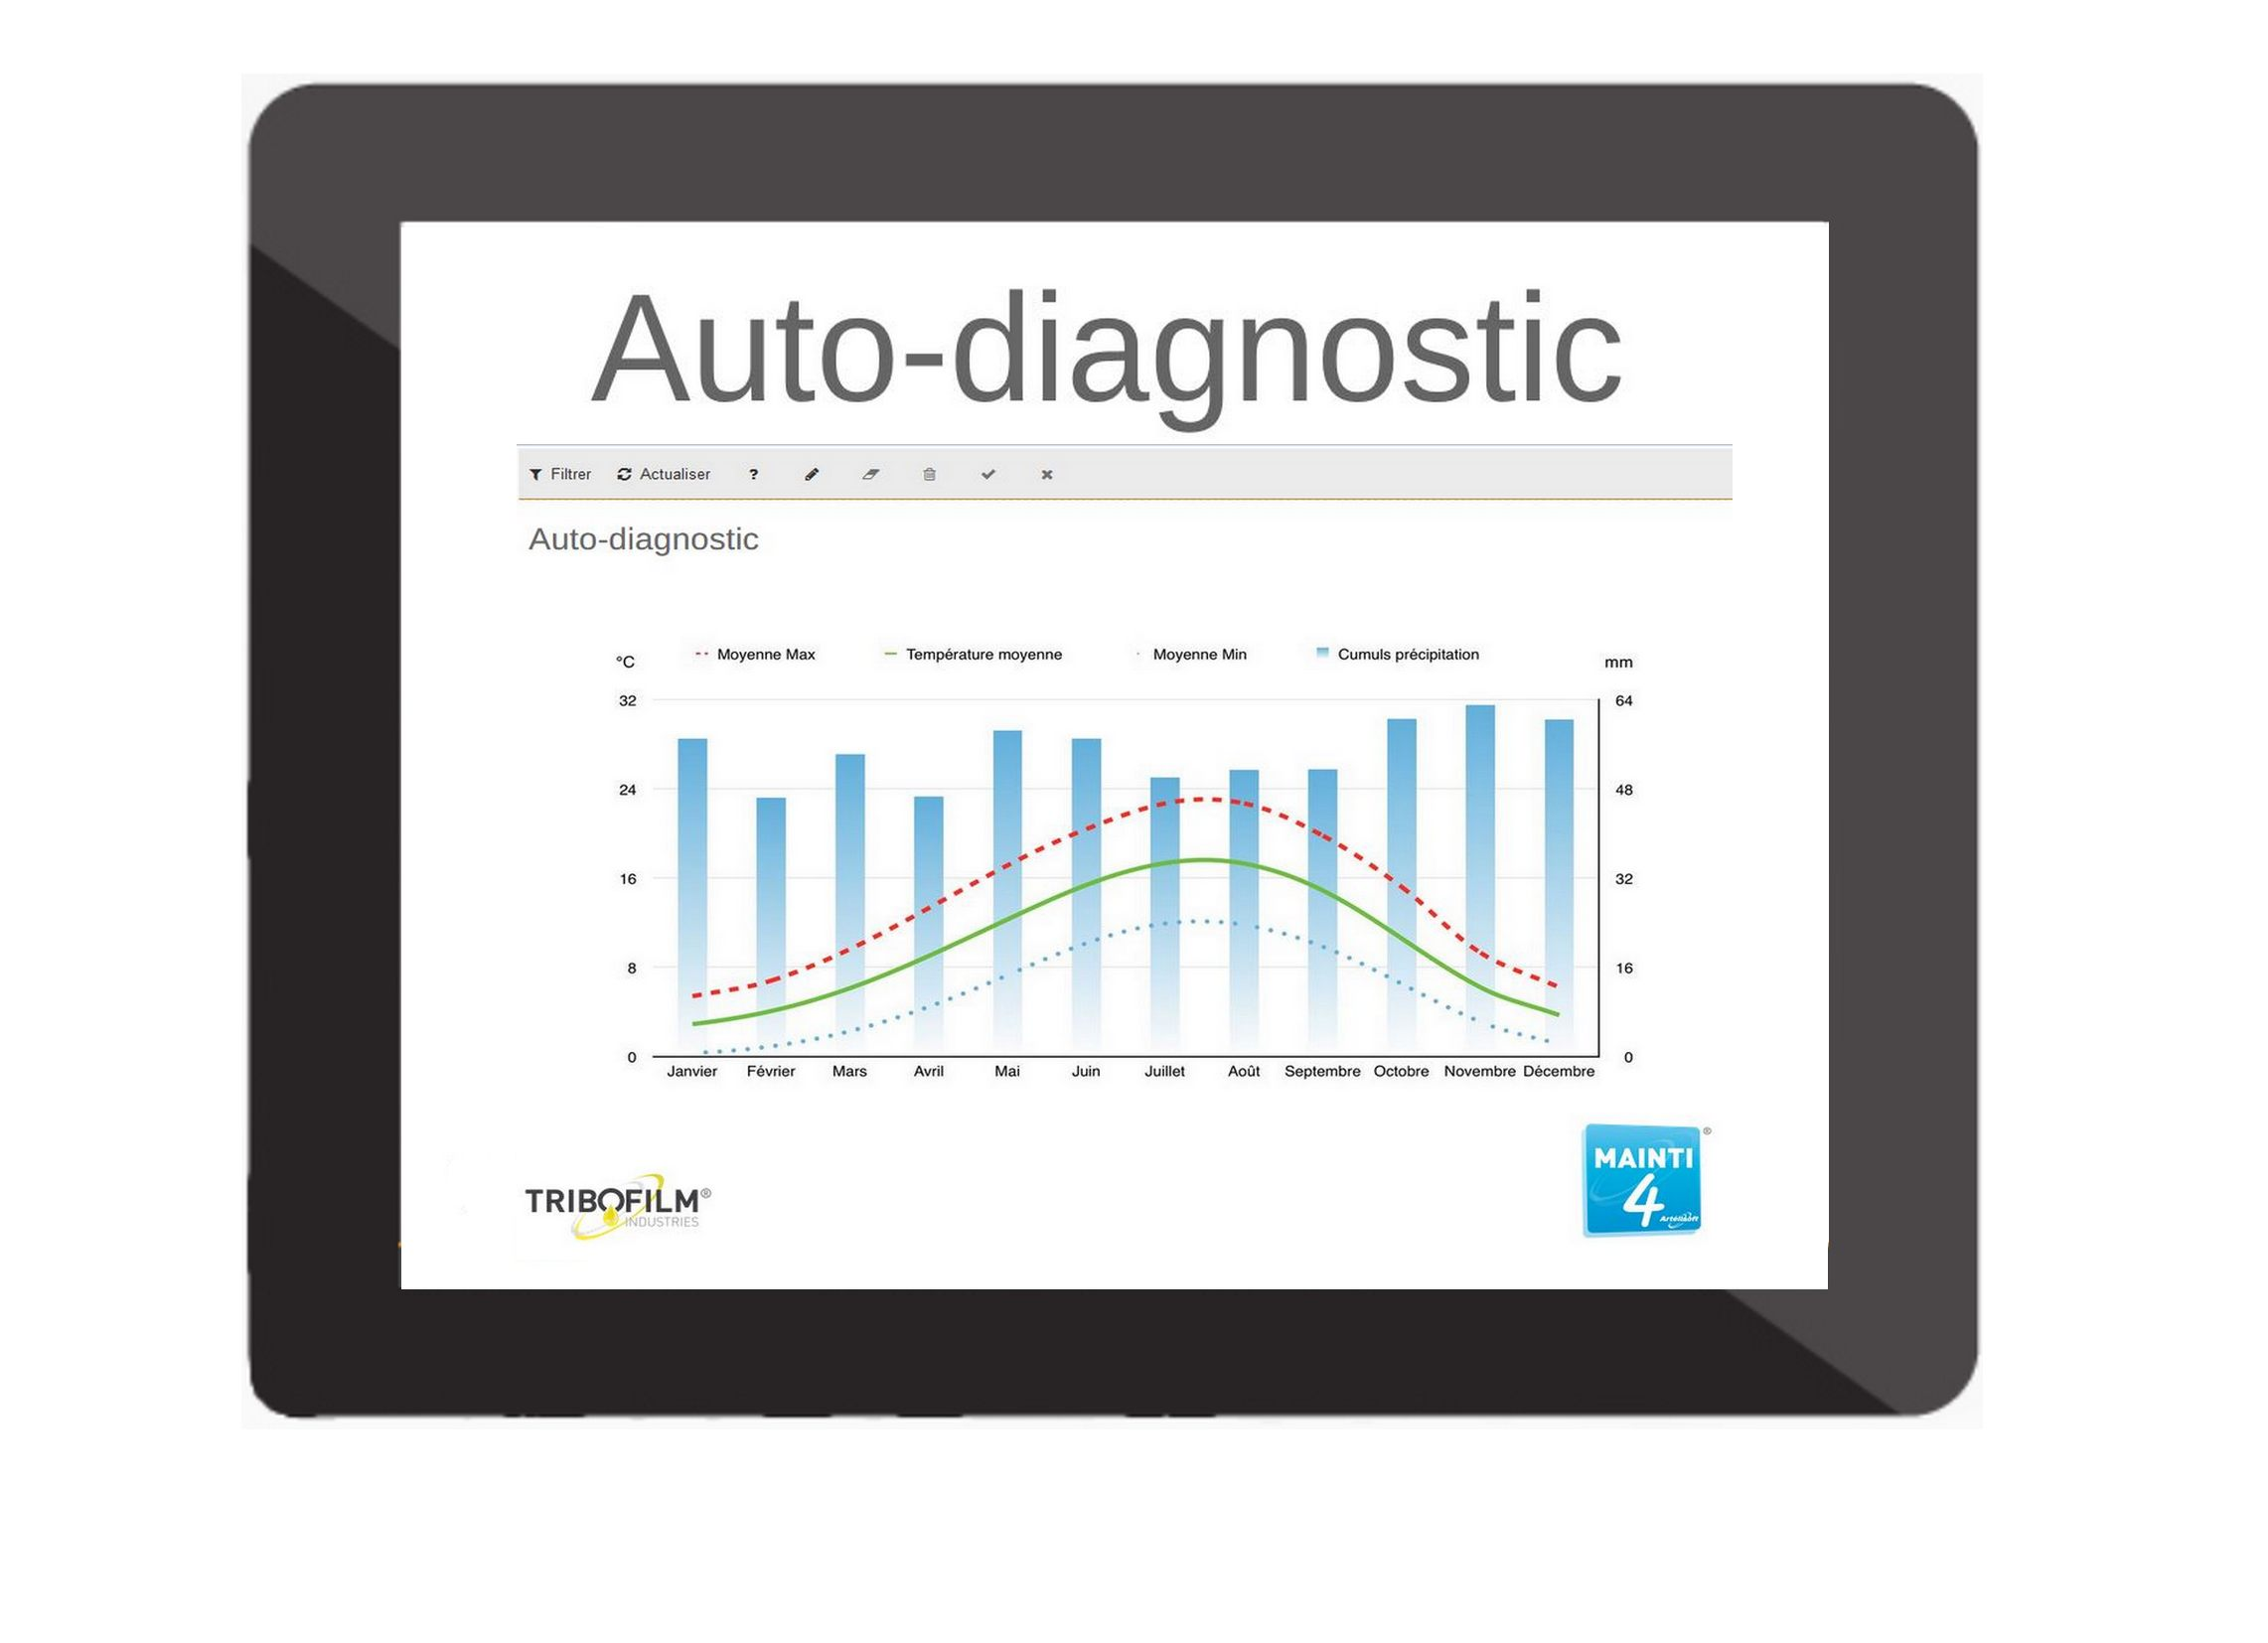 Auto-diagnostic ; TRIBOFILM Industries